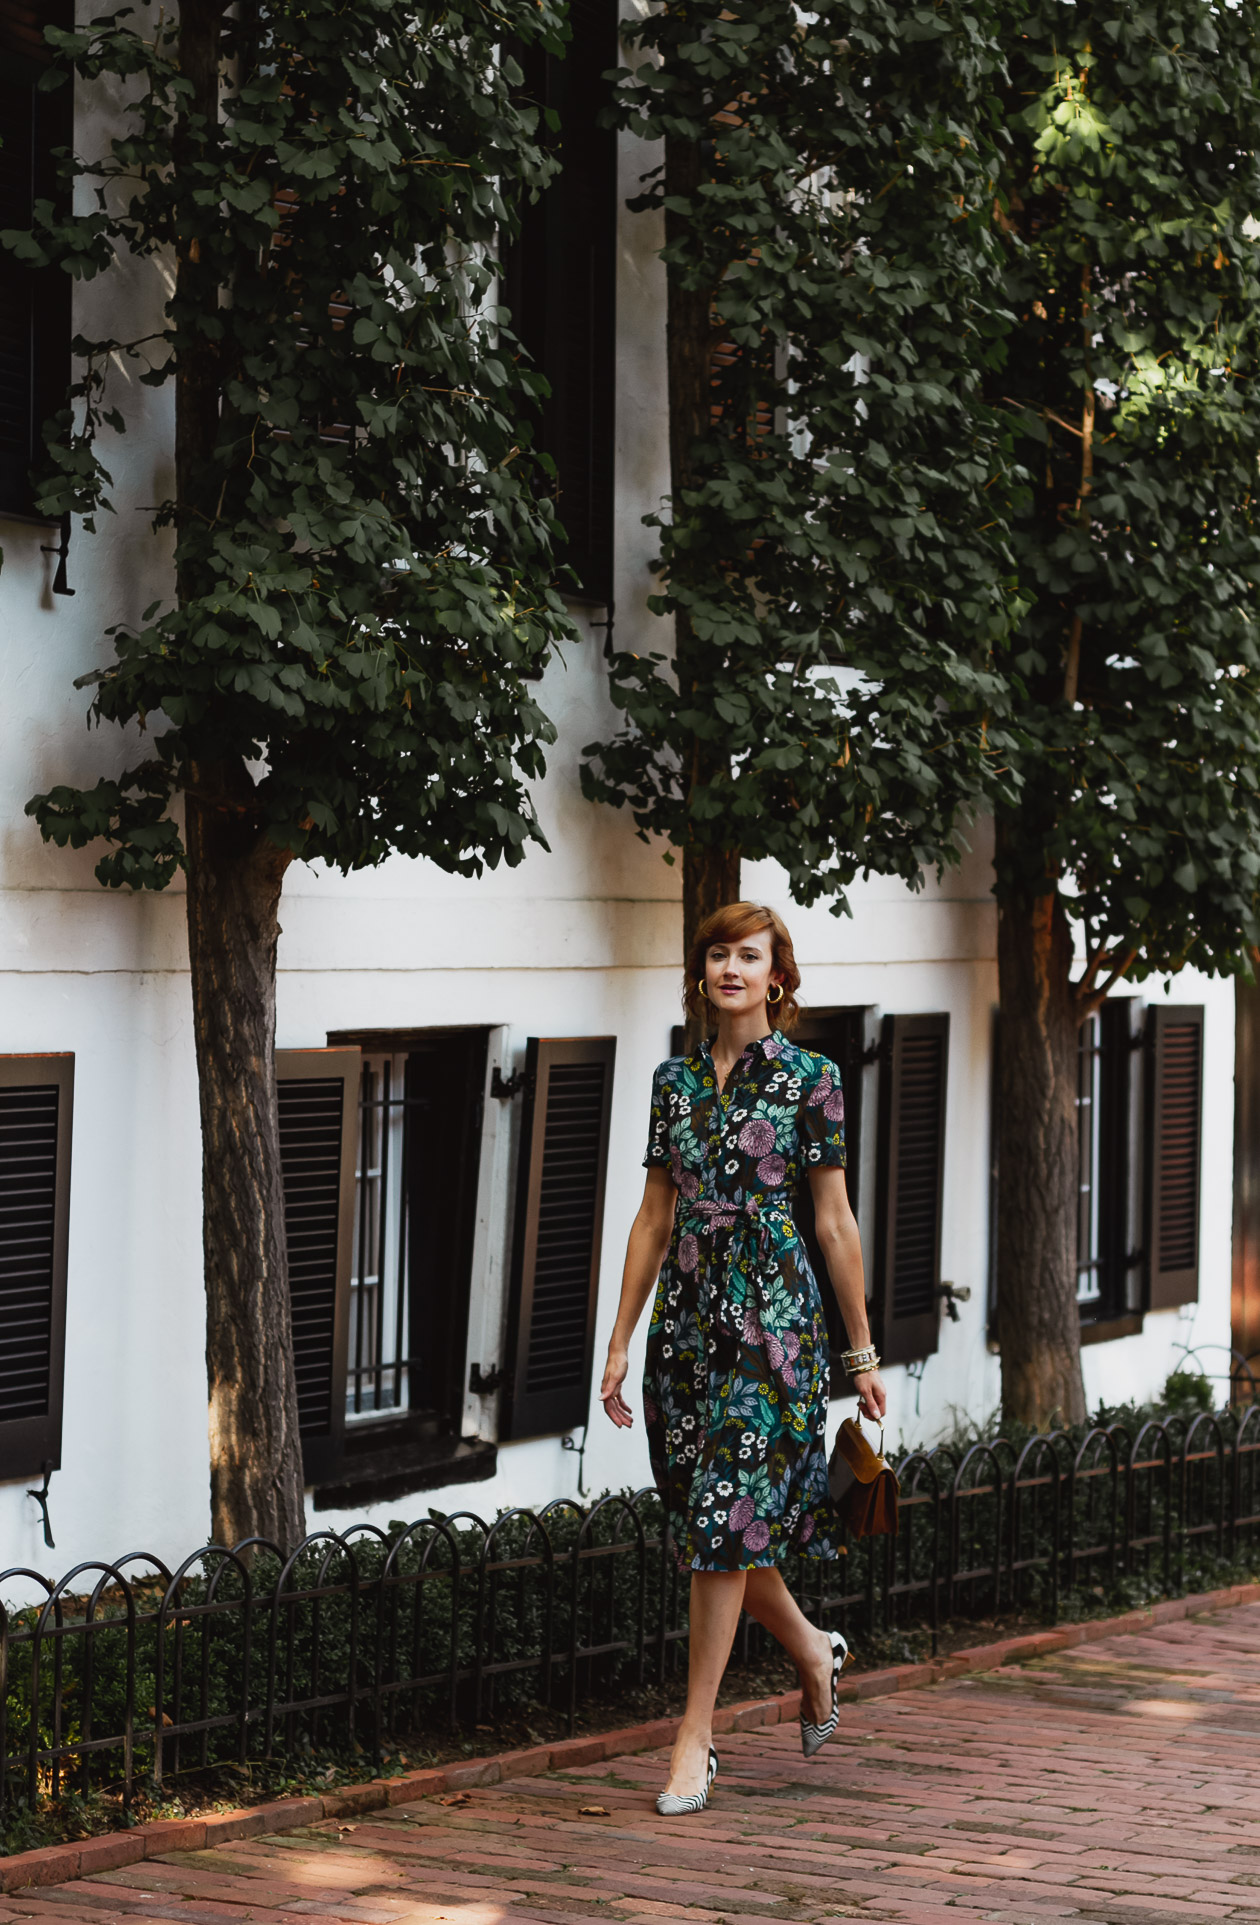 J. Crew x Abigail Borg dress